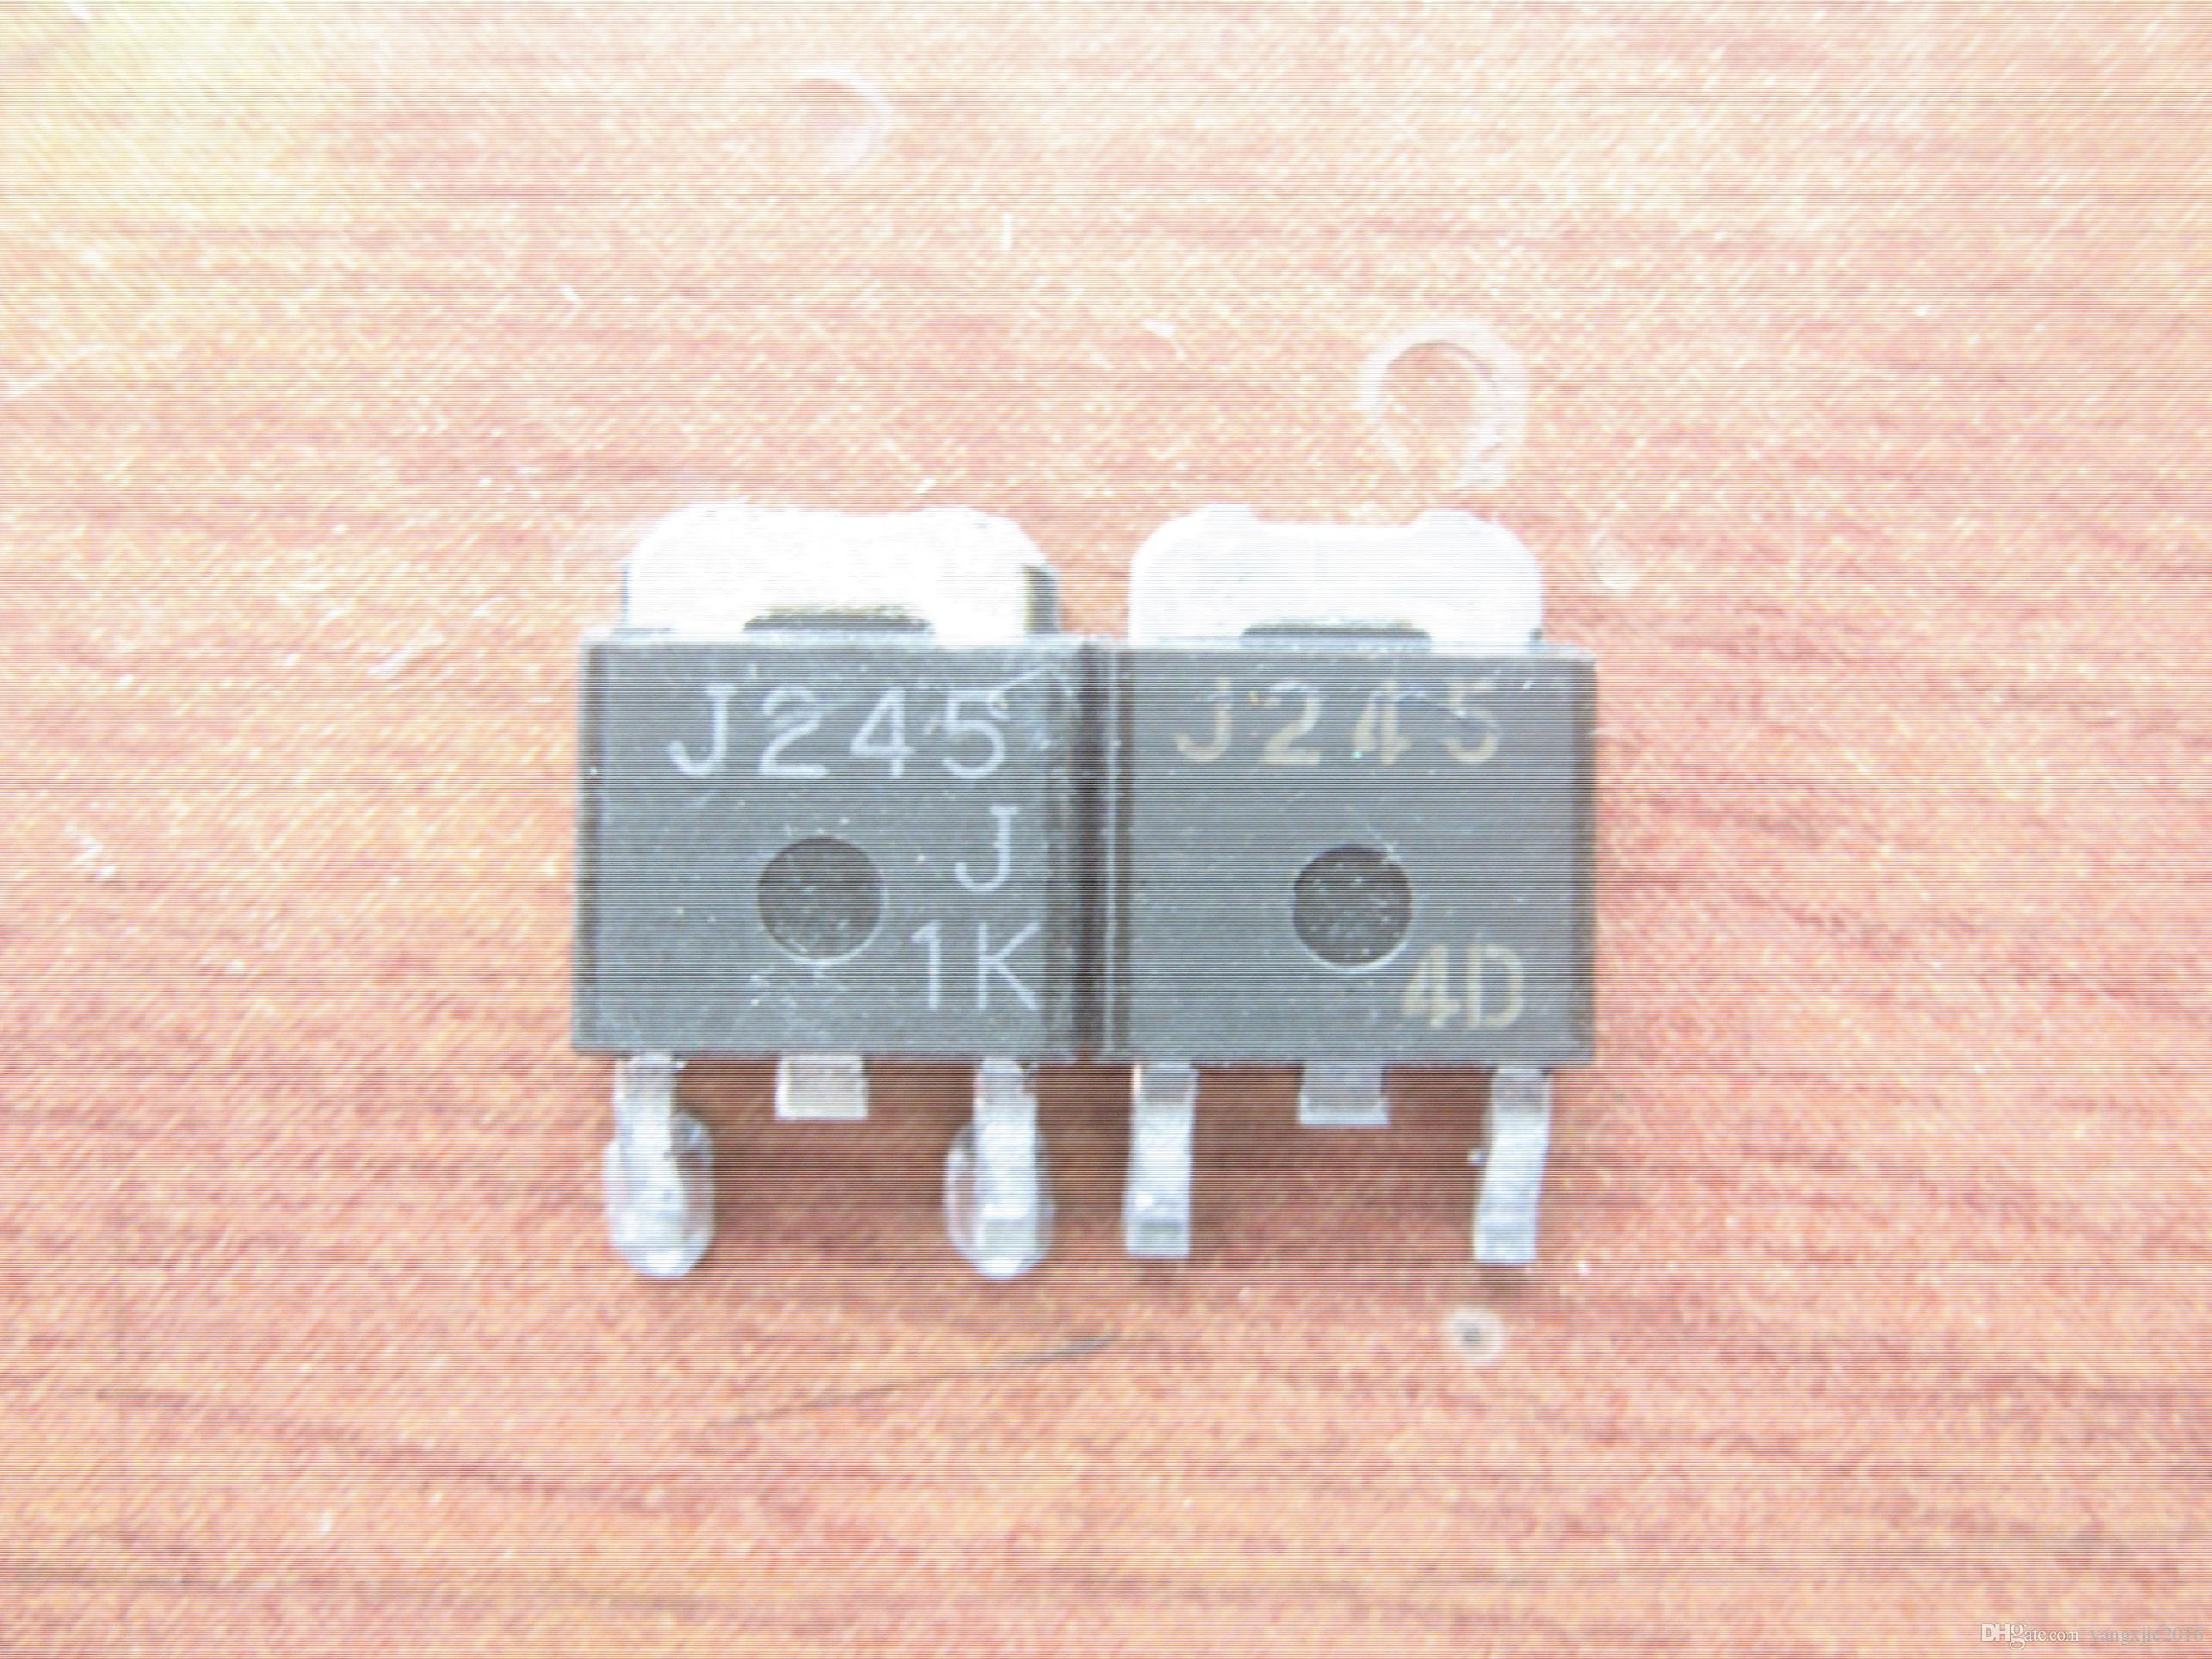 2018 Original Used Field Effect Transistor Mosfet 2sj245 J245 To 252 Testing Circuit Test Ok From Yangxjie2016 006